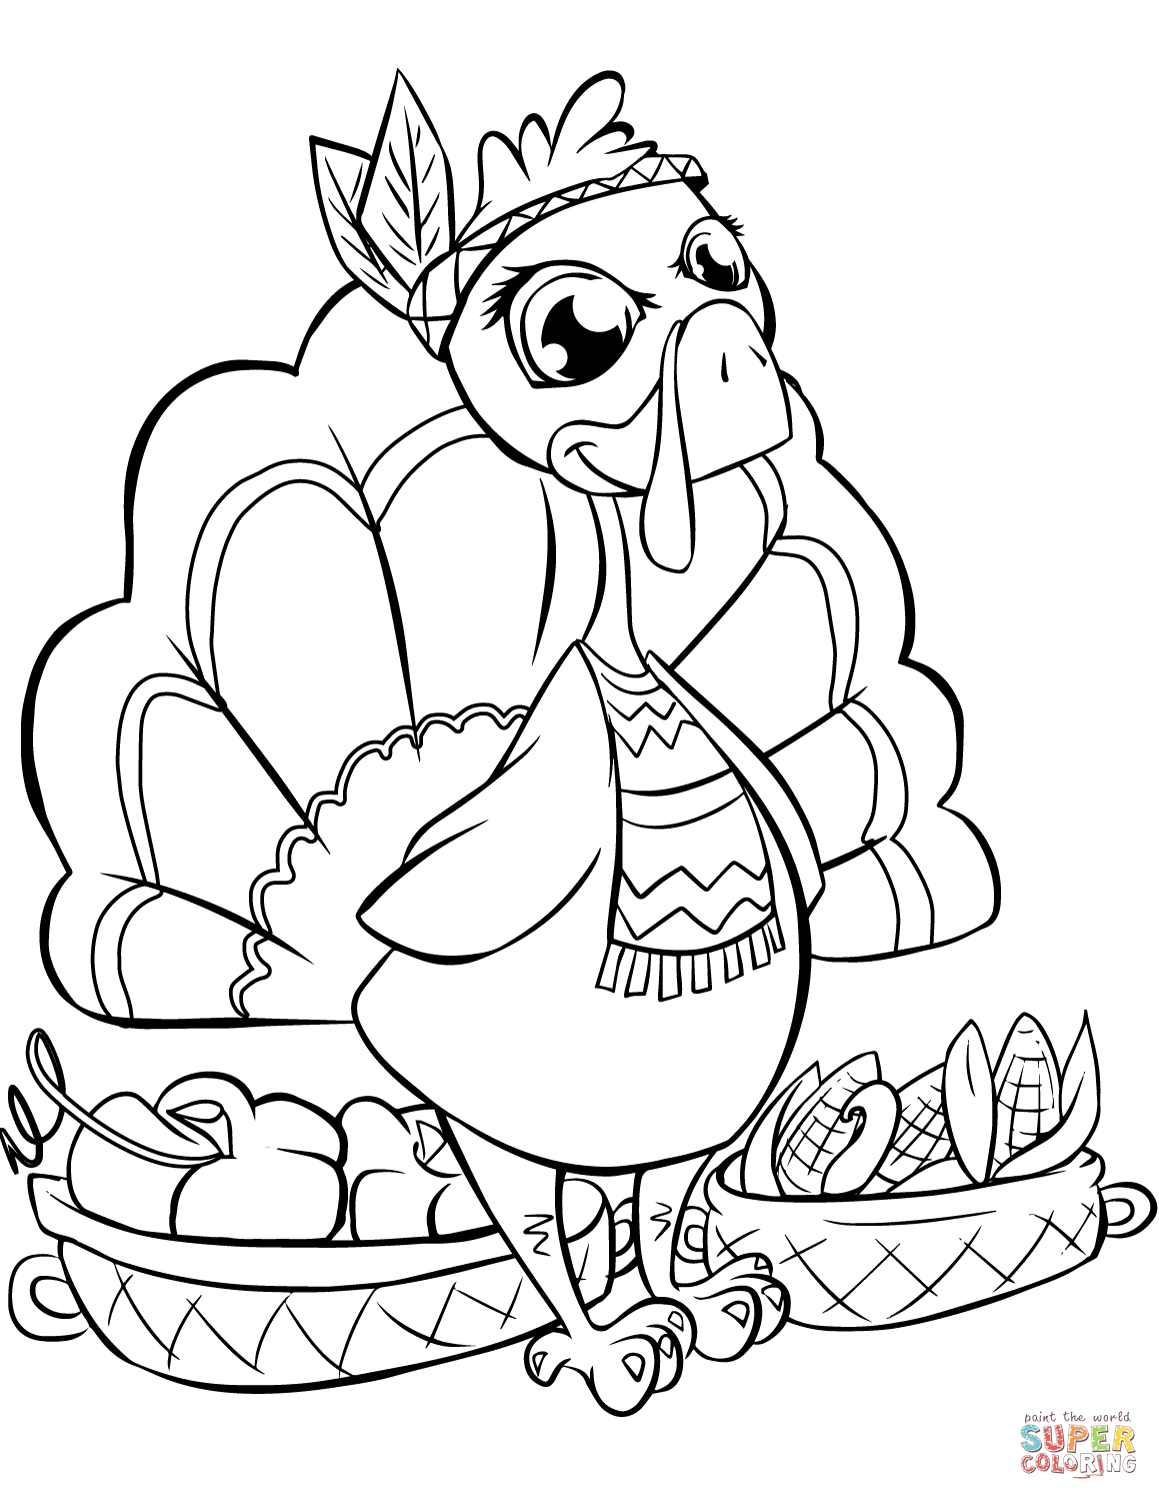 coloring pages prettyksgiving 2020